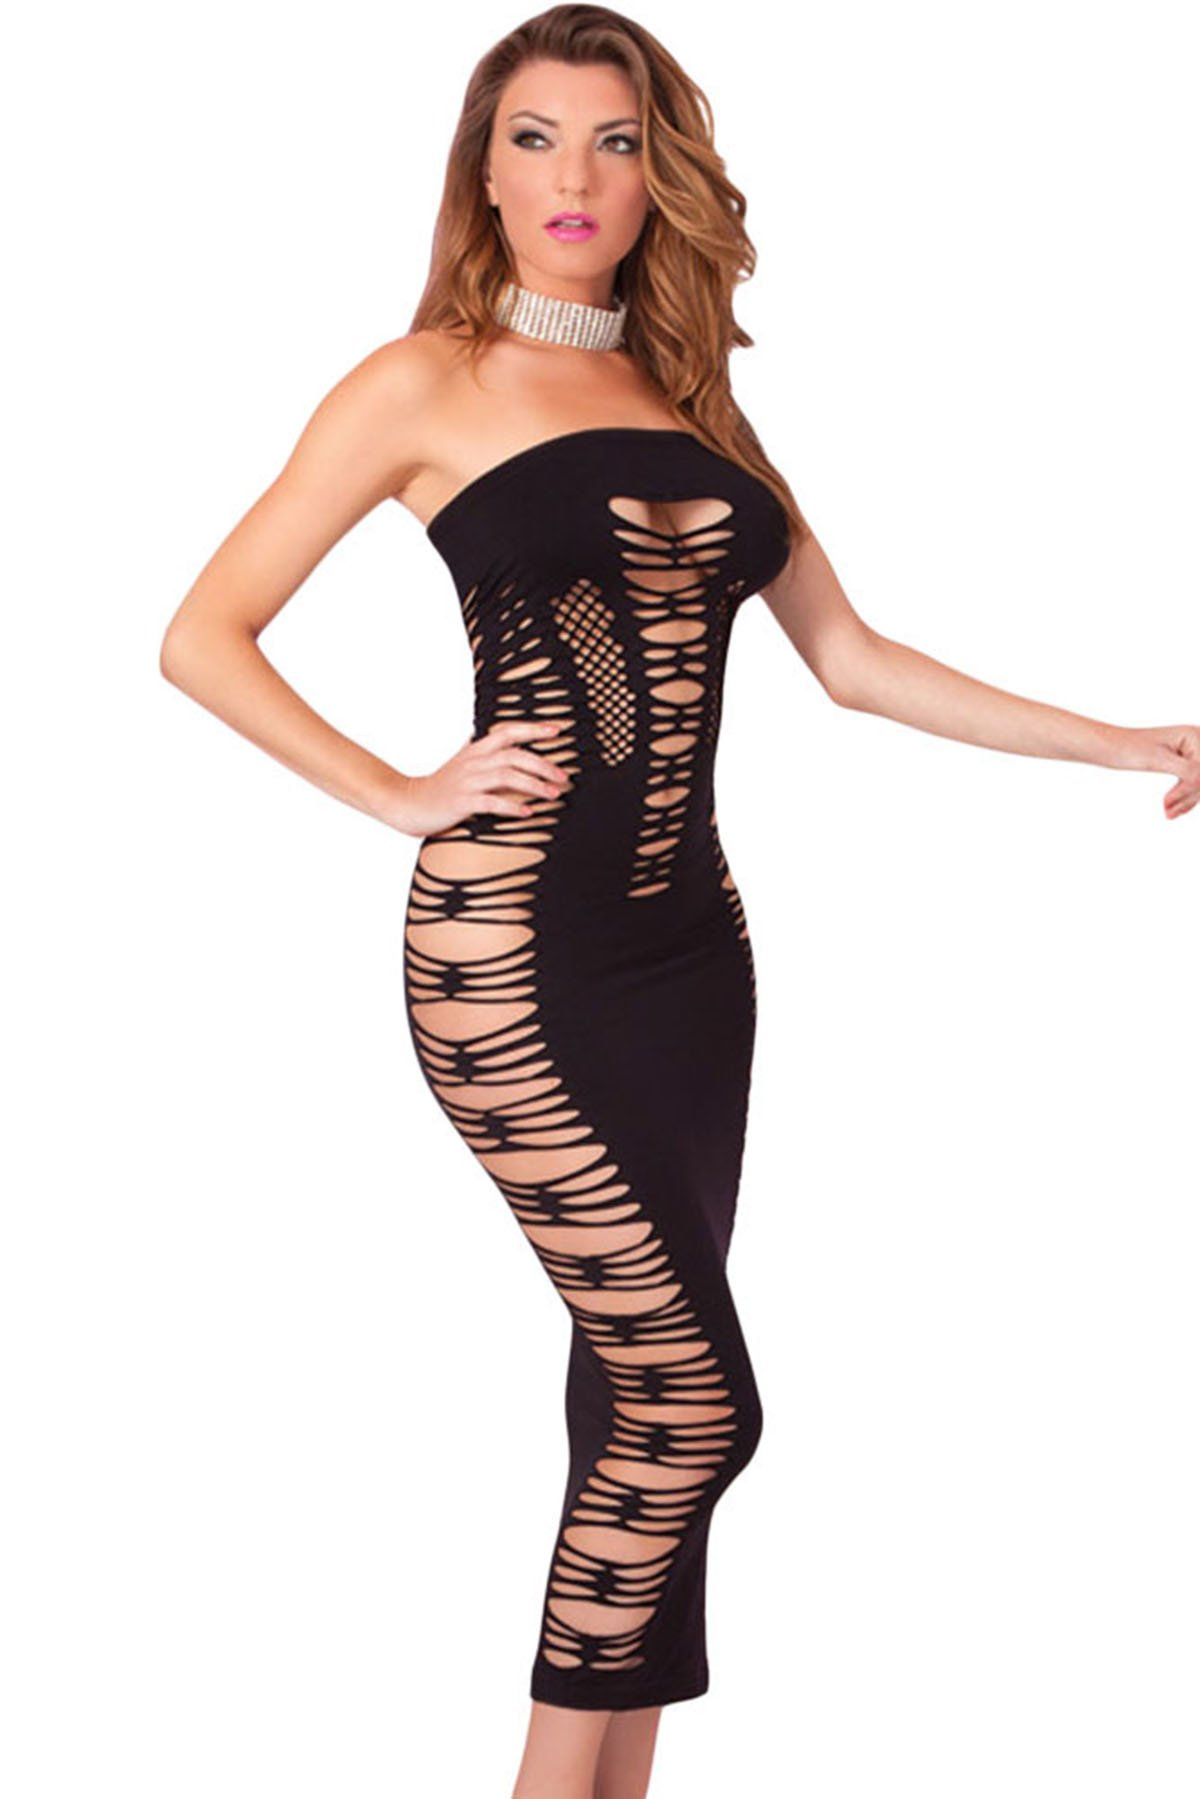 Topfly Big Spender Strapless Long Tube Dress Hollow Out Bandage Night Dress Black US XXS-L/Asian Free Size by Topfly® (Image #4)